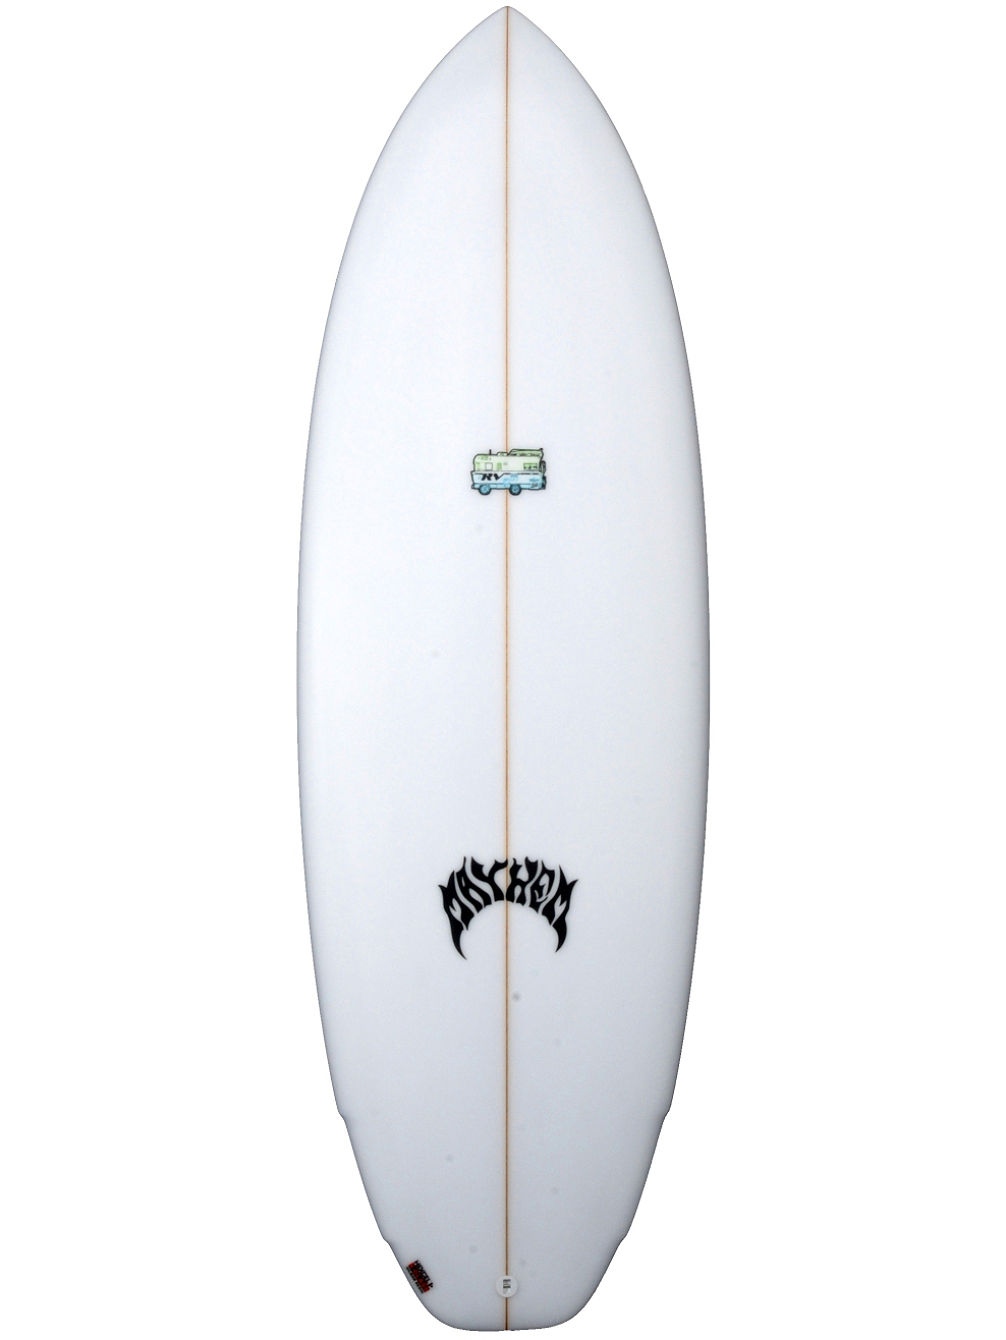 RV 5'9 Surfboard